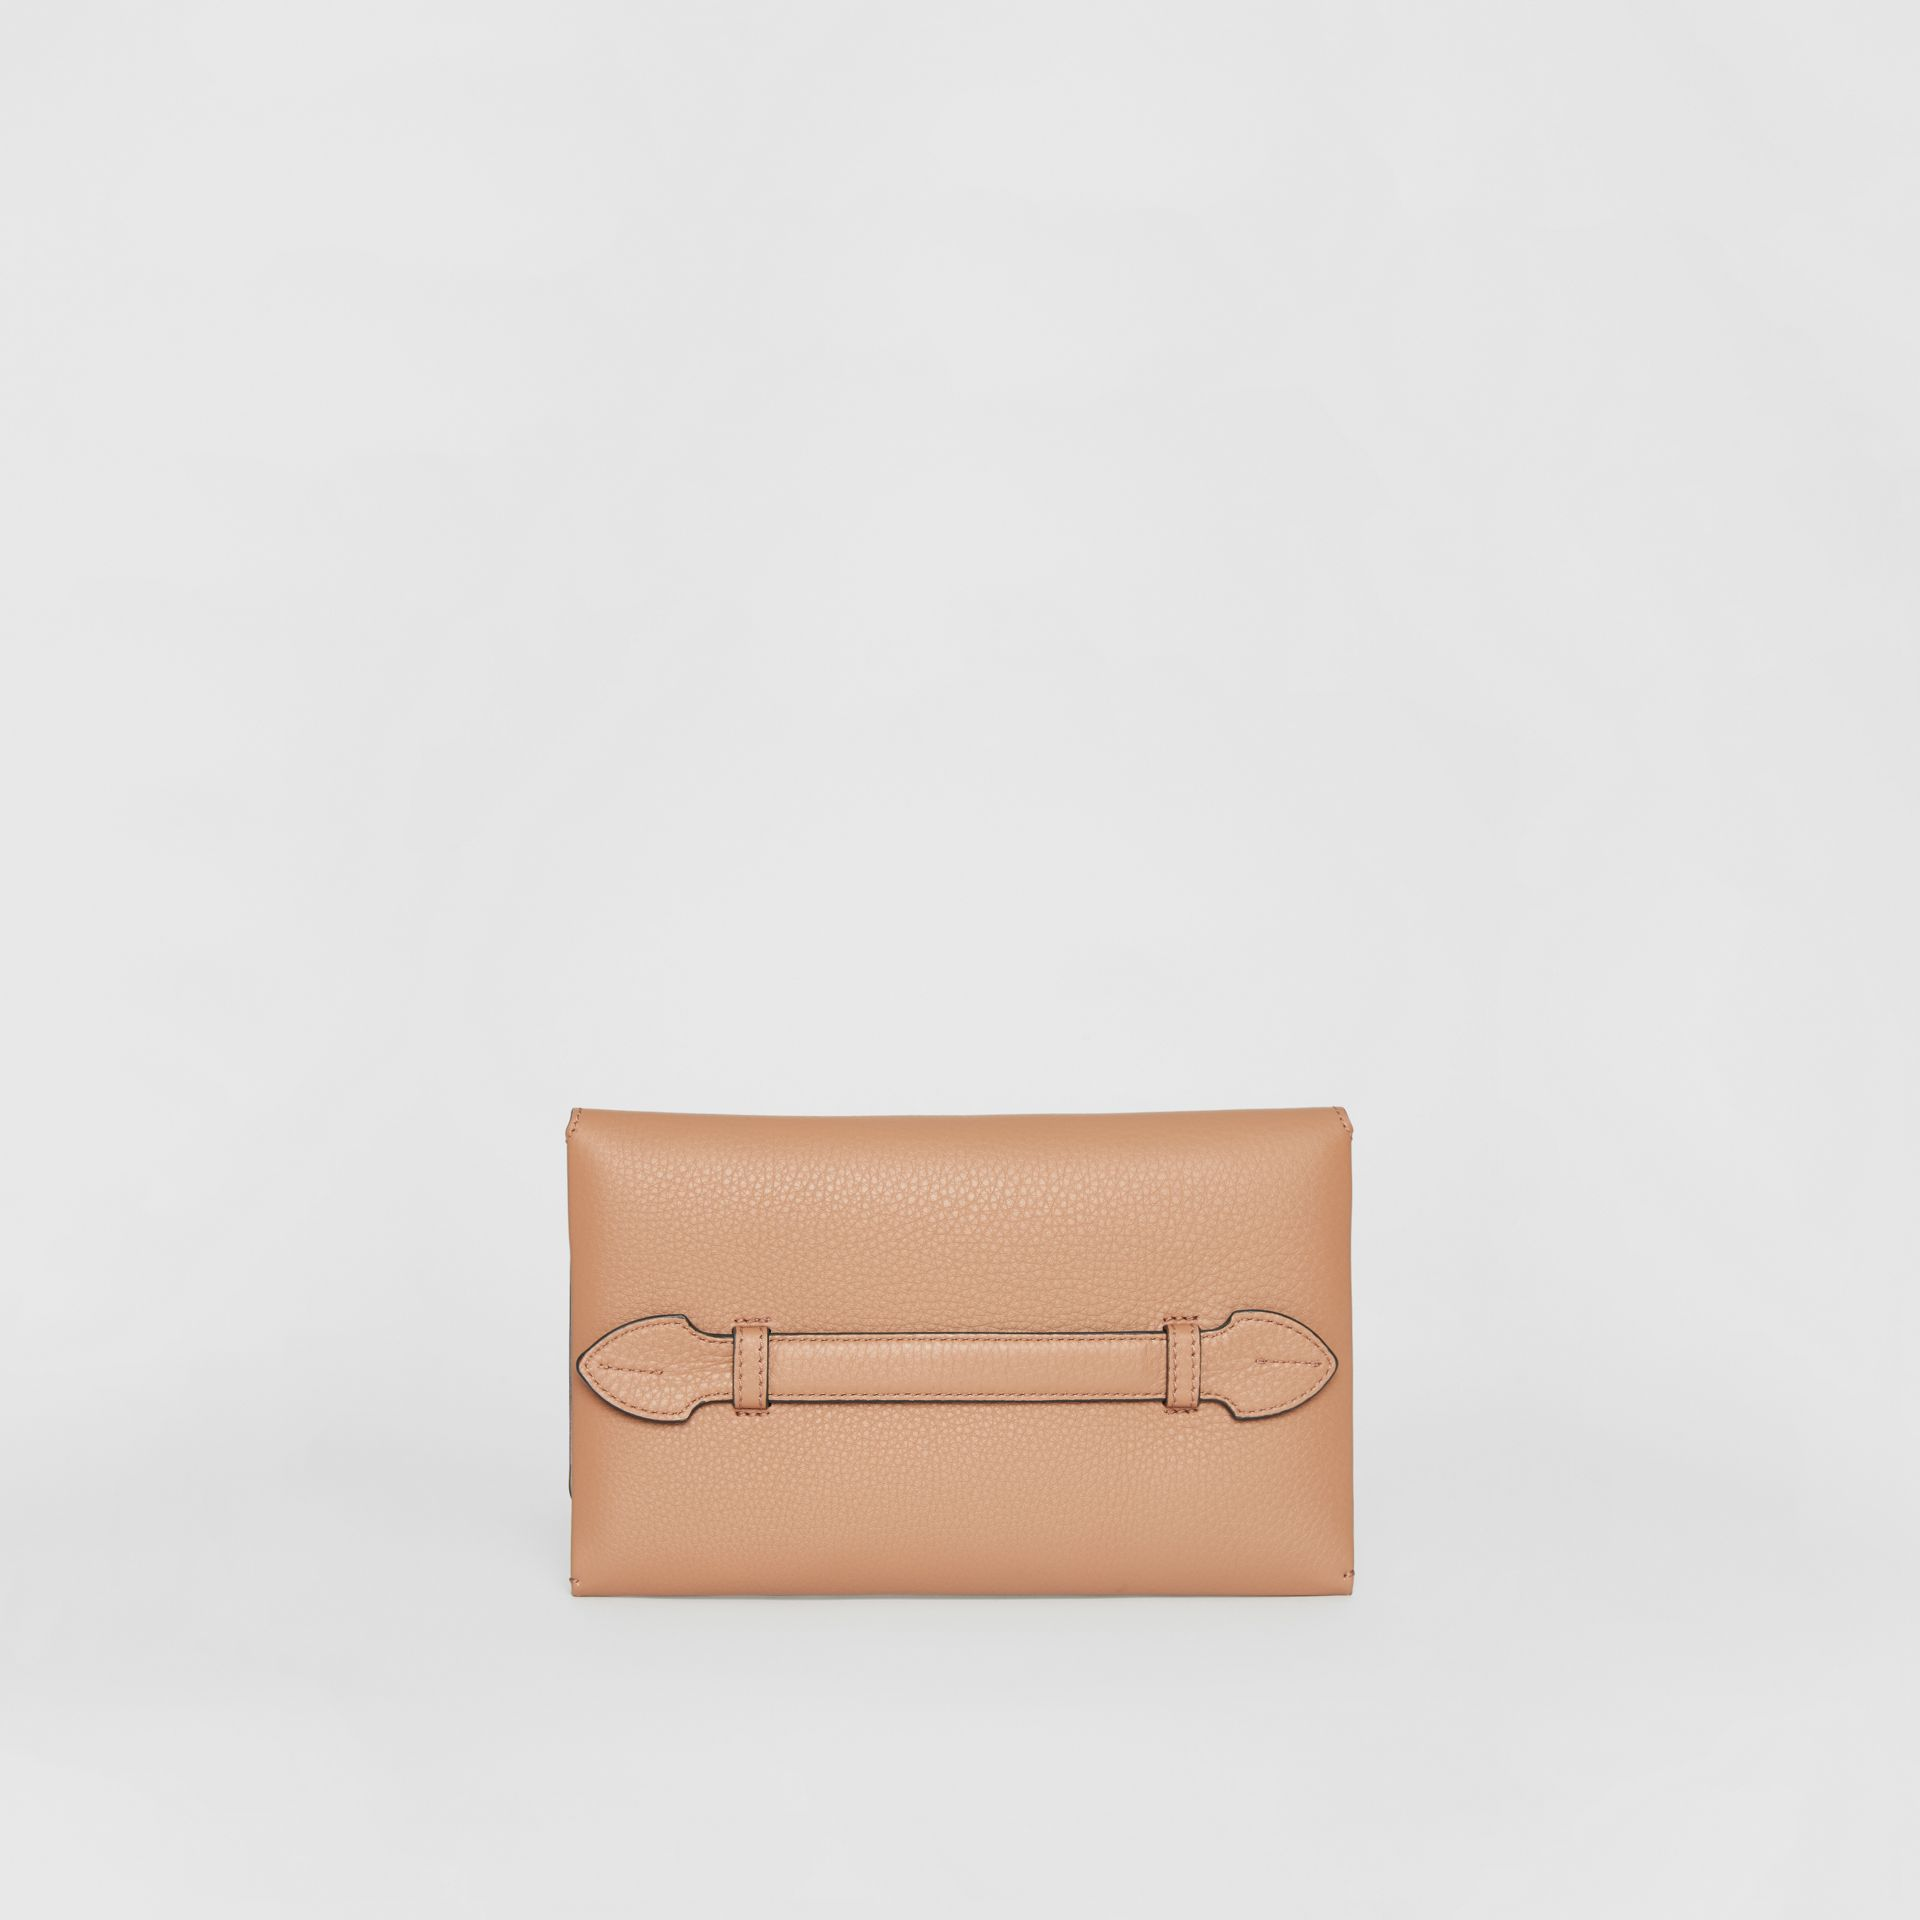 Two-tone Leather Wristlet Clutch in Light Camel - Women | Burberry United Kingdom - gallery image 7